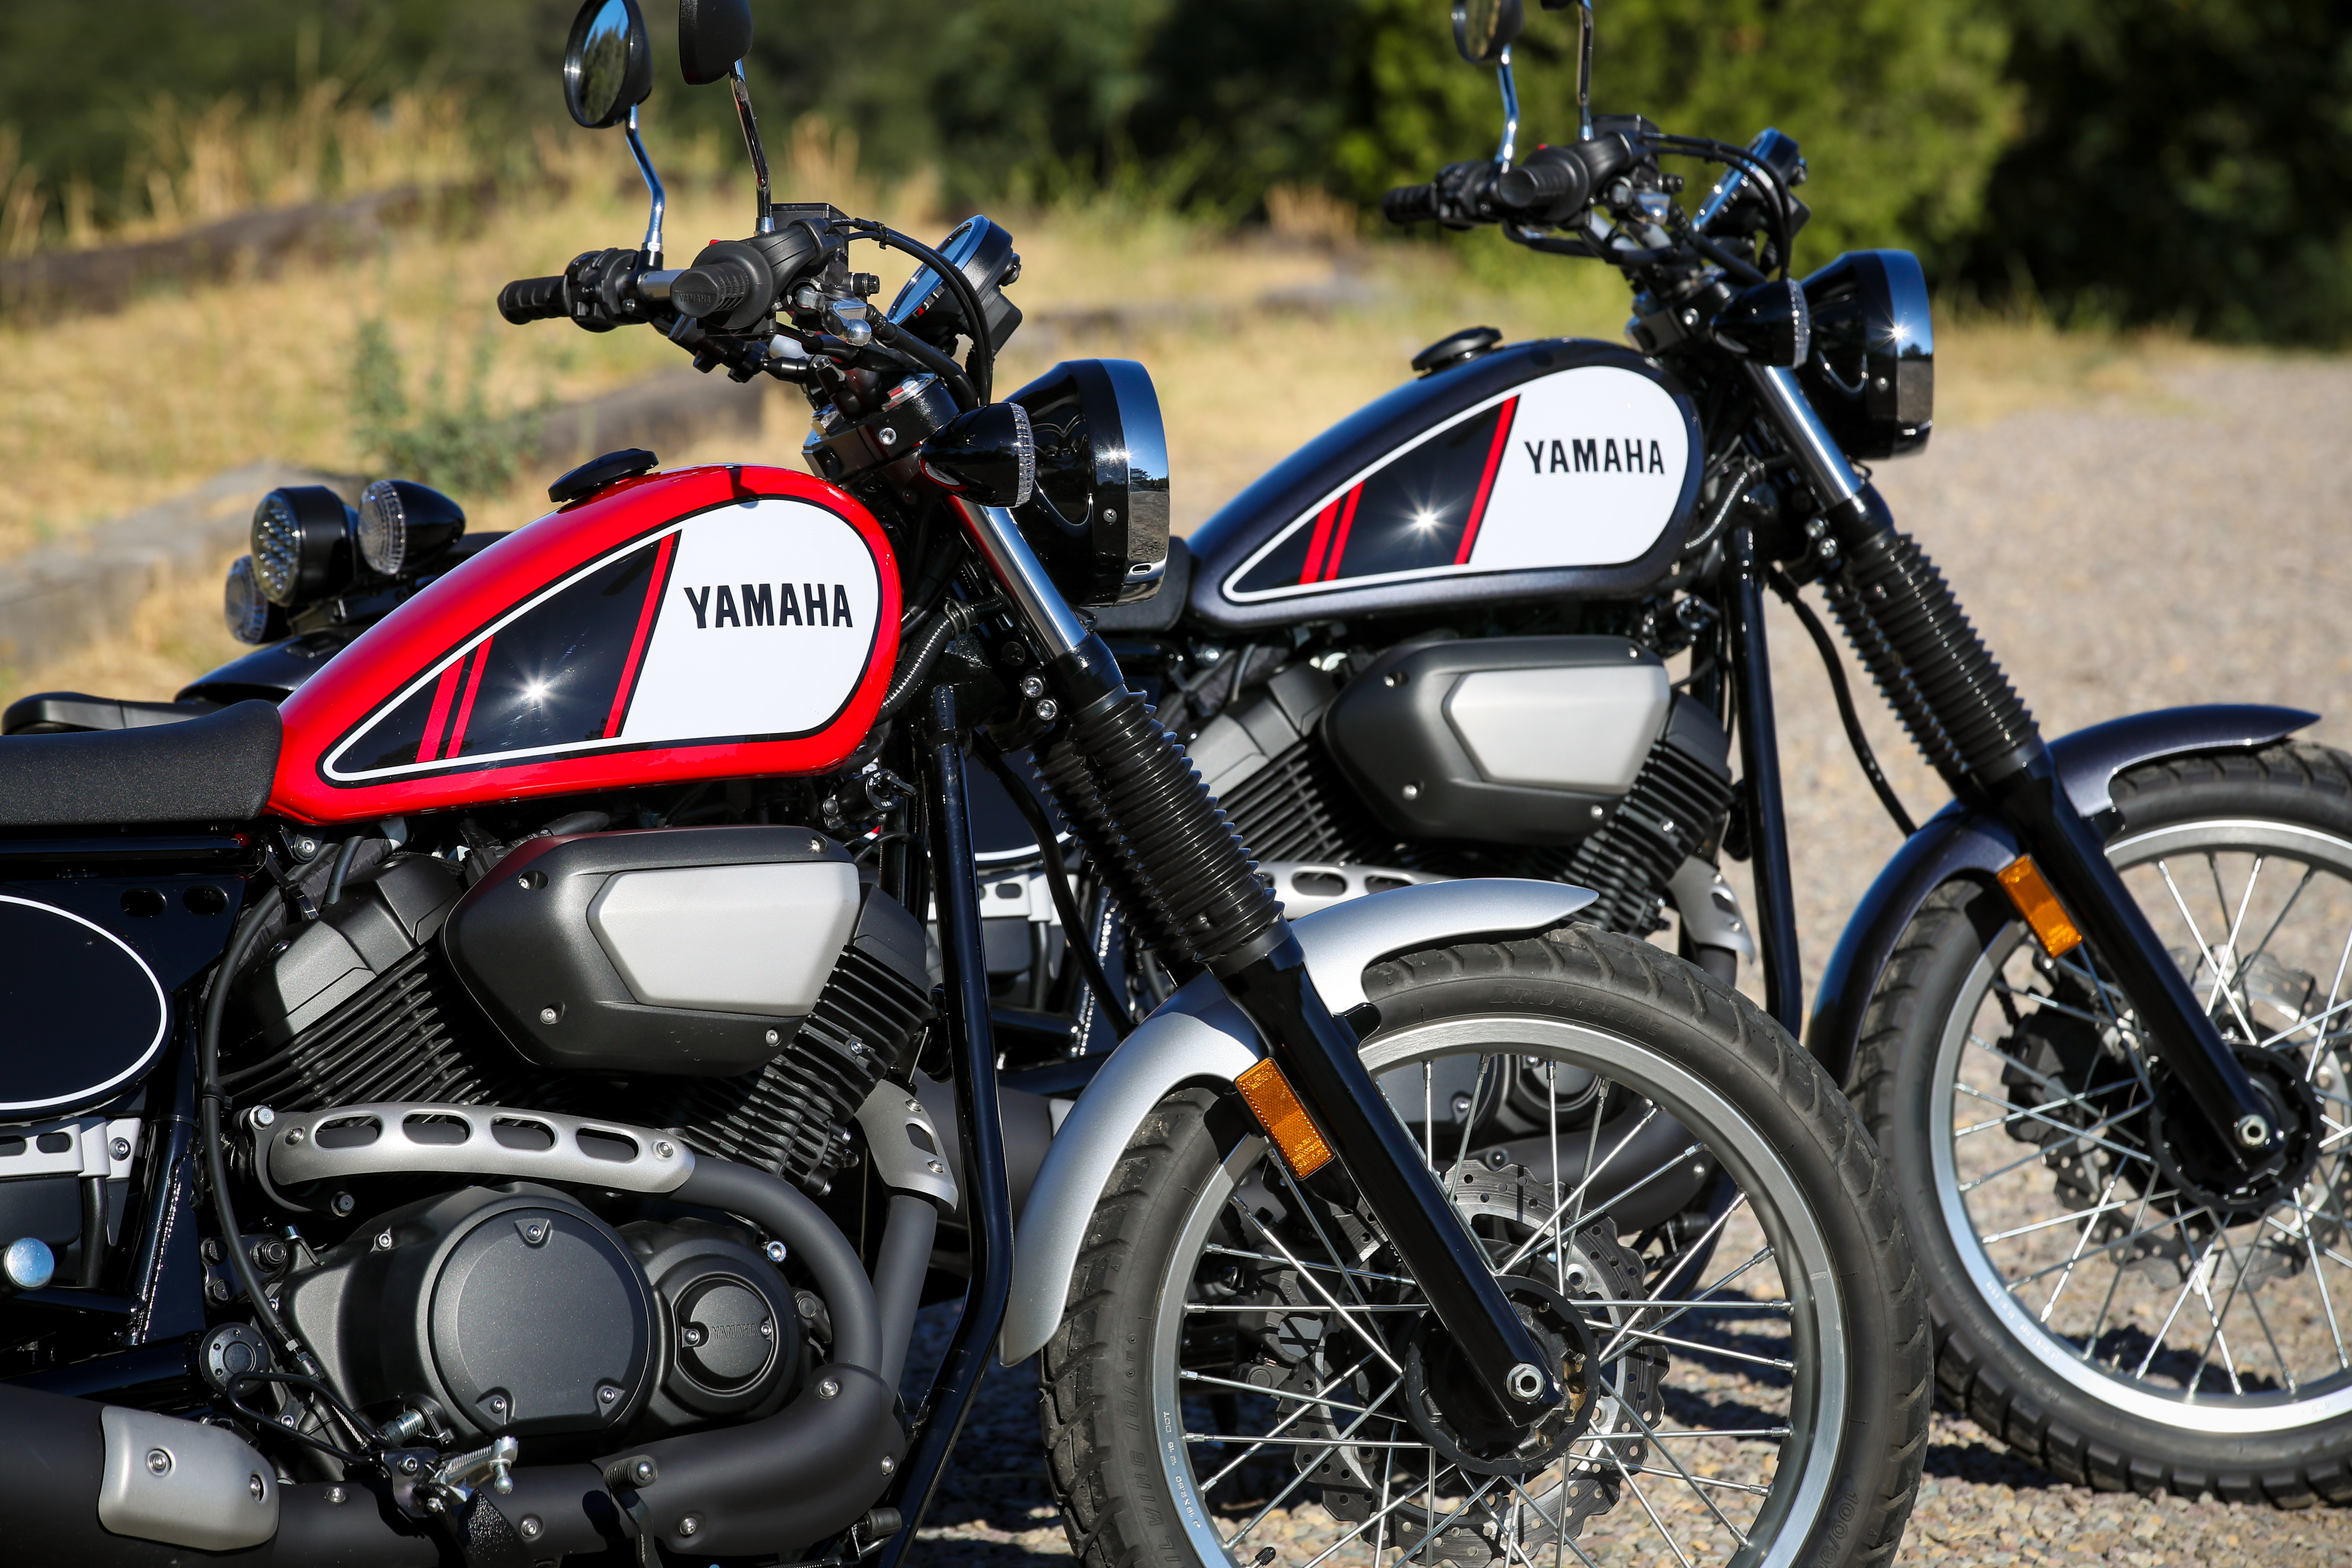 2017 Yamaha SCR950 First Ride Review